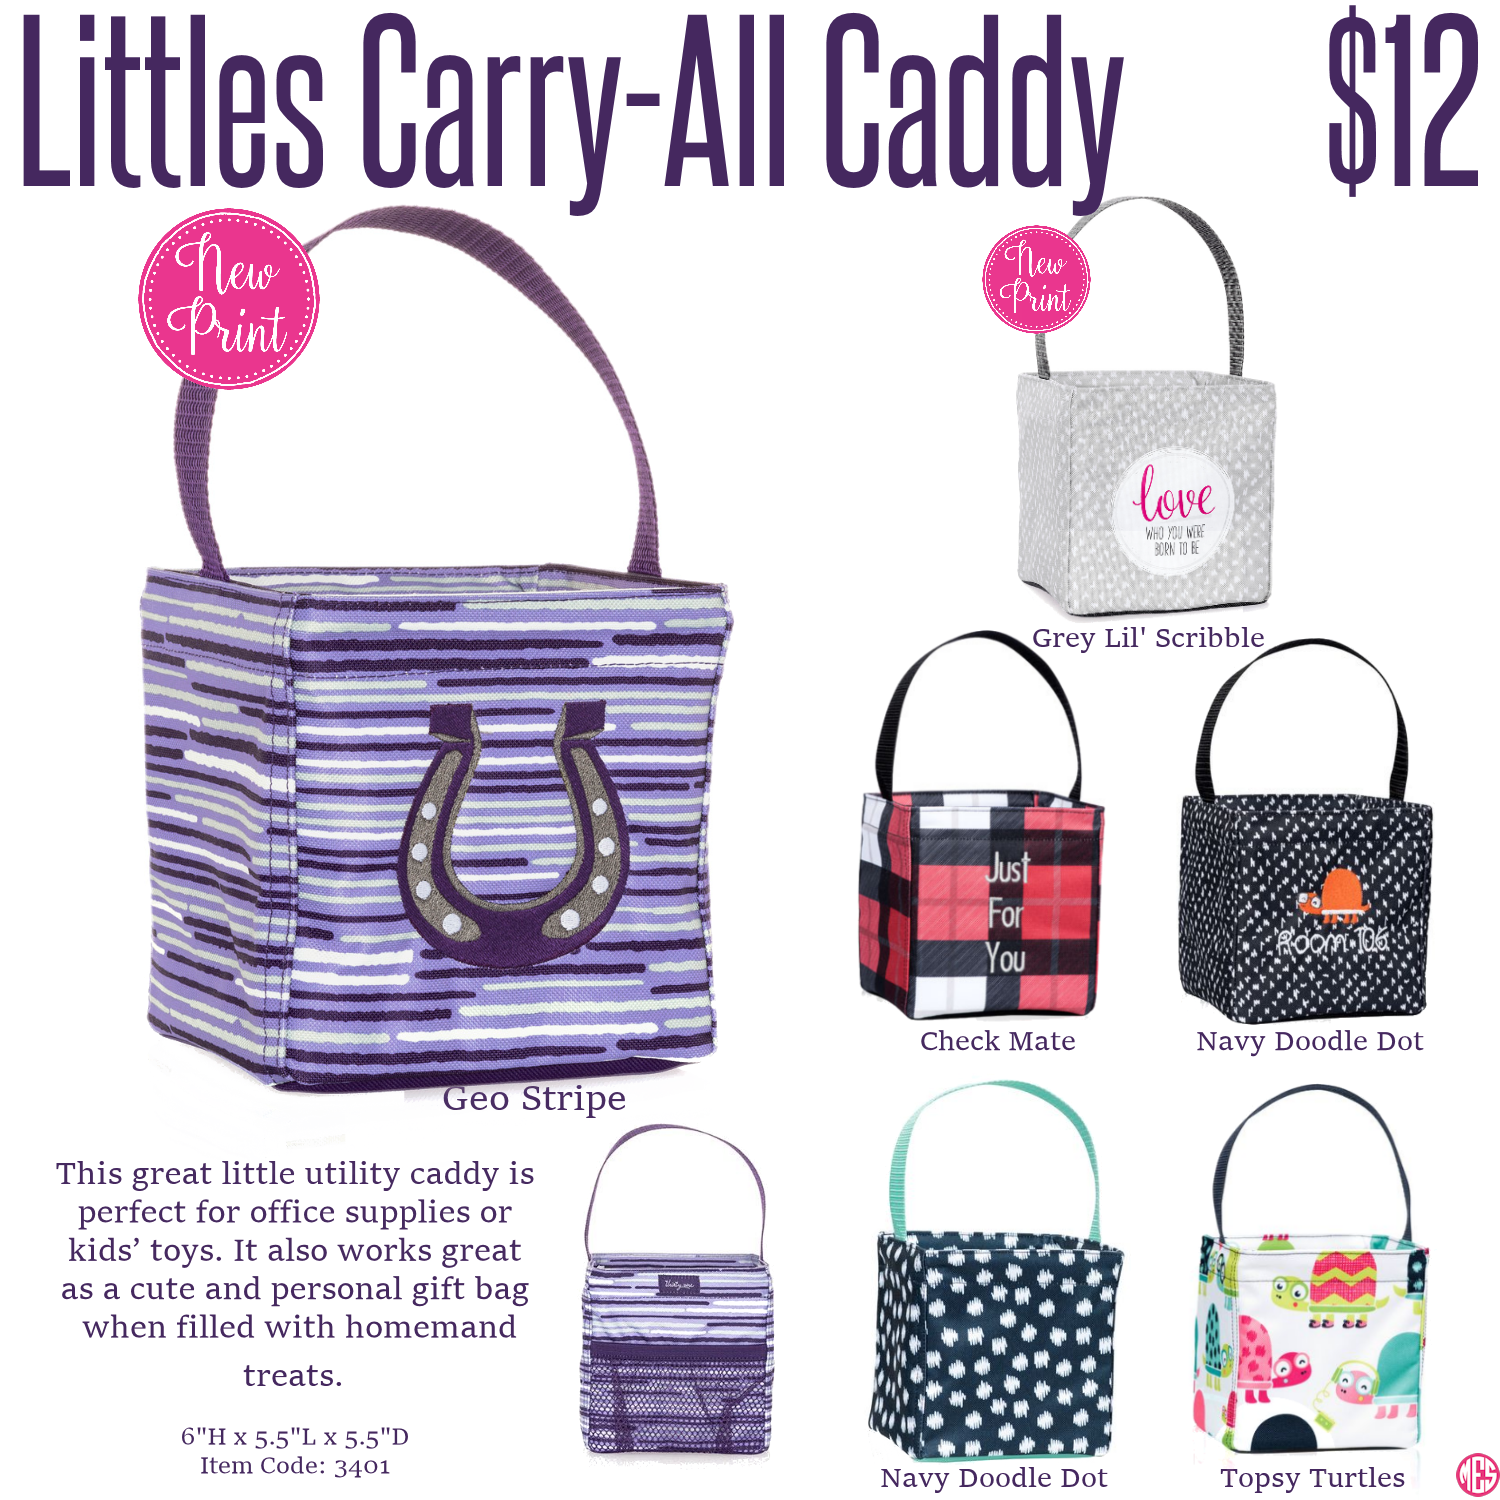 52e28181391e Thirty-One Littles Carry-All Caddy | 31 Chick | Thirty one fall ...